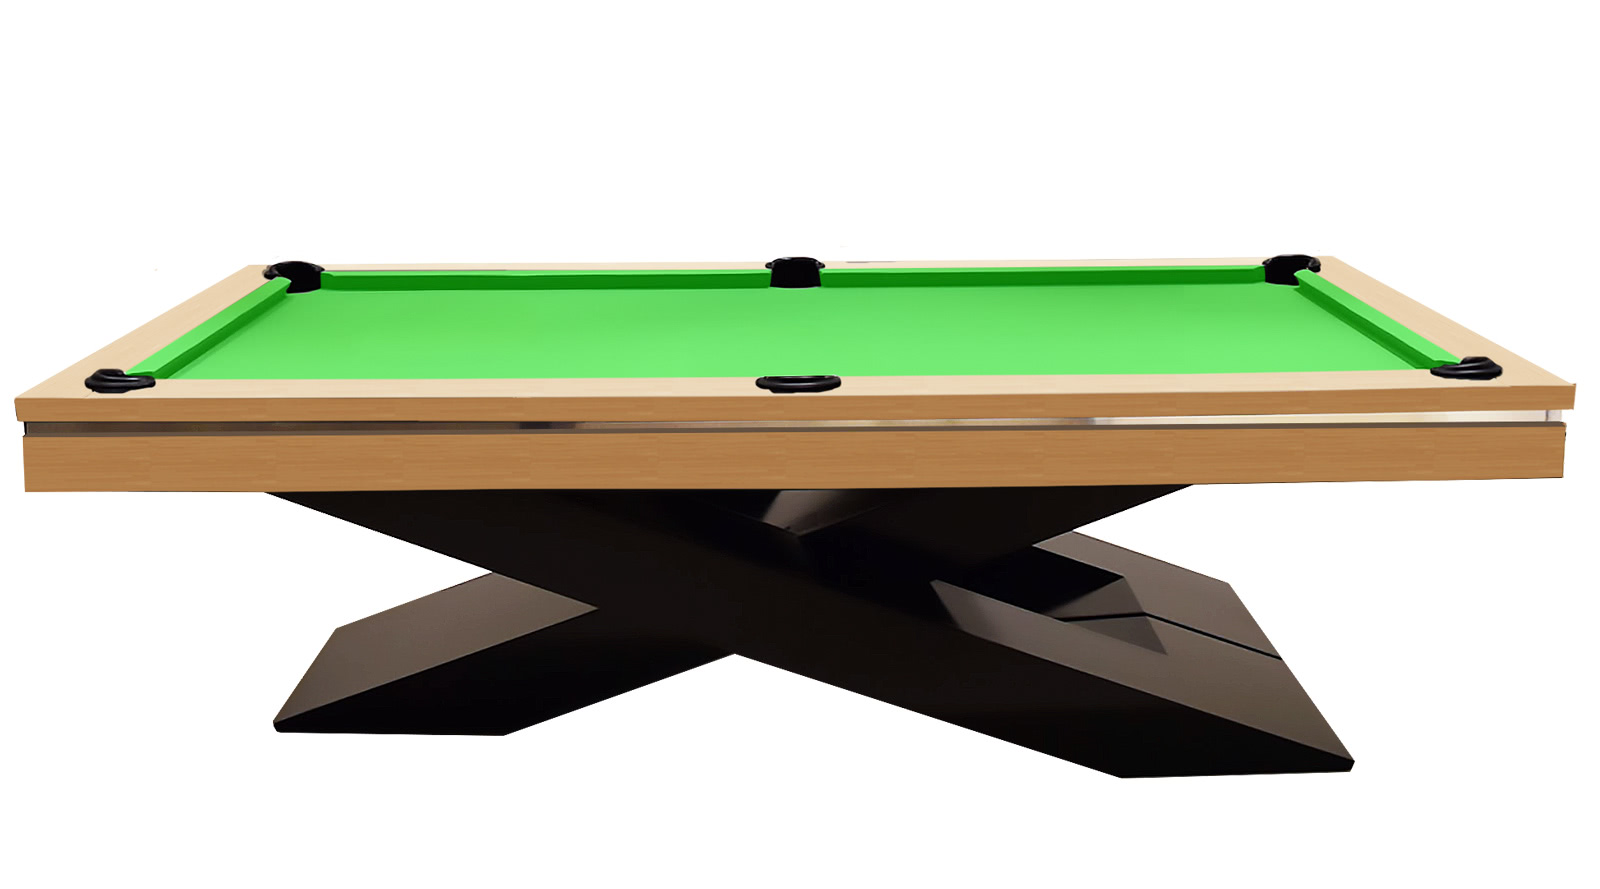 The Olympus Pool Table With Oak Veneered Body U0026 Black Legs